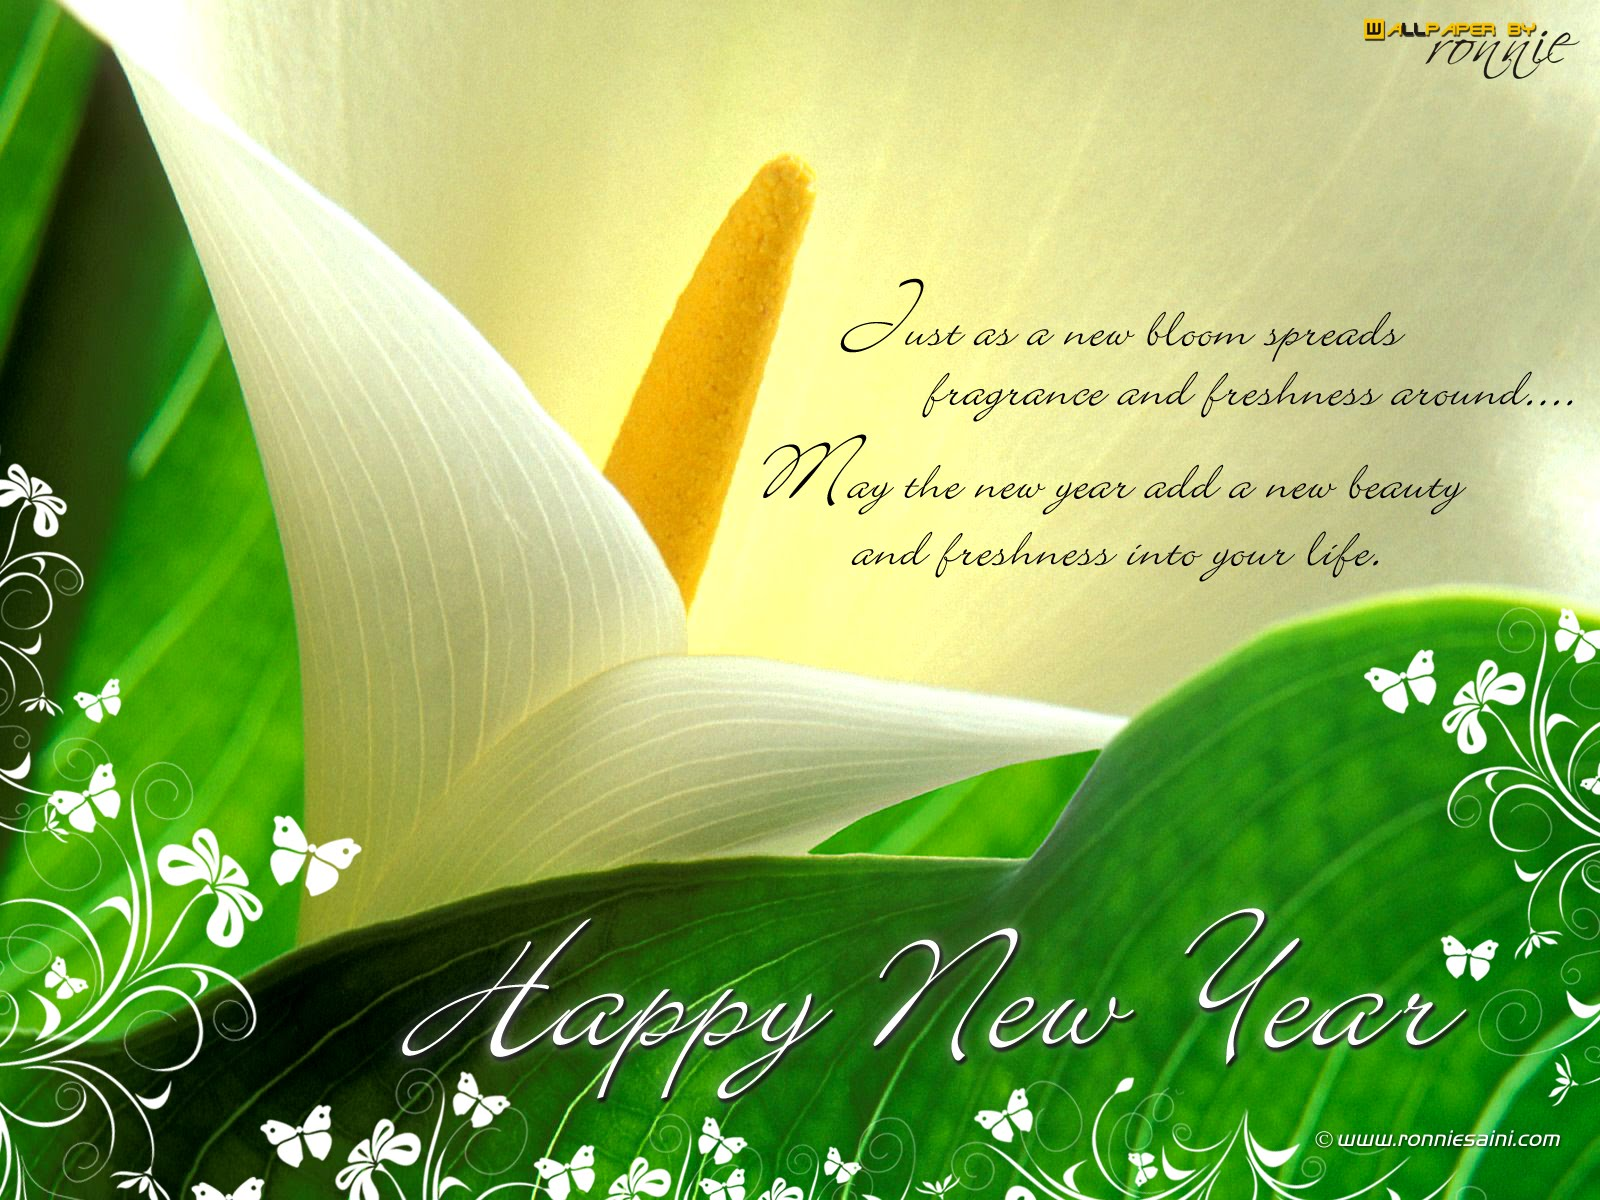 Greeting wallpaper 2015 wallpapersafari happy new year messages 2016 new year wishes greeting 1600x1200 m4hsunfo